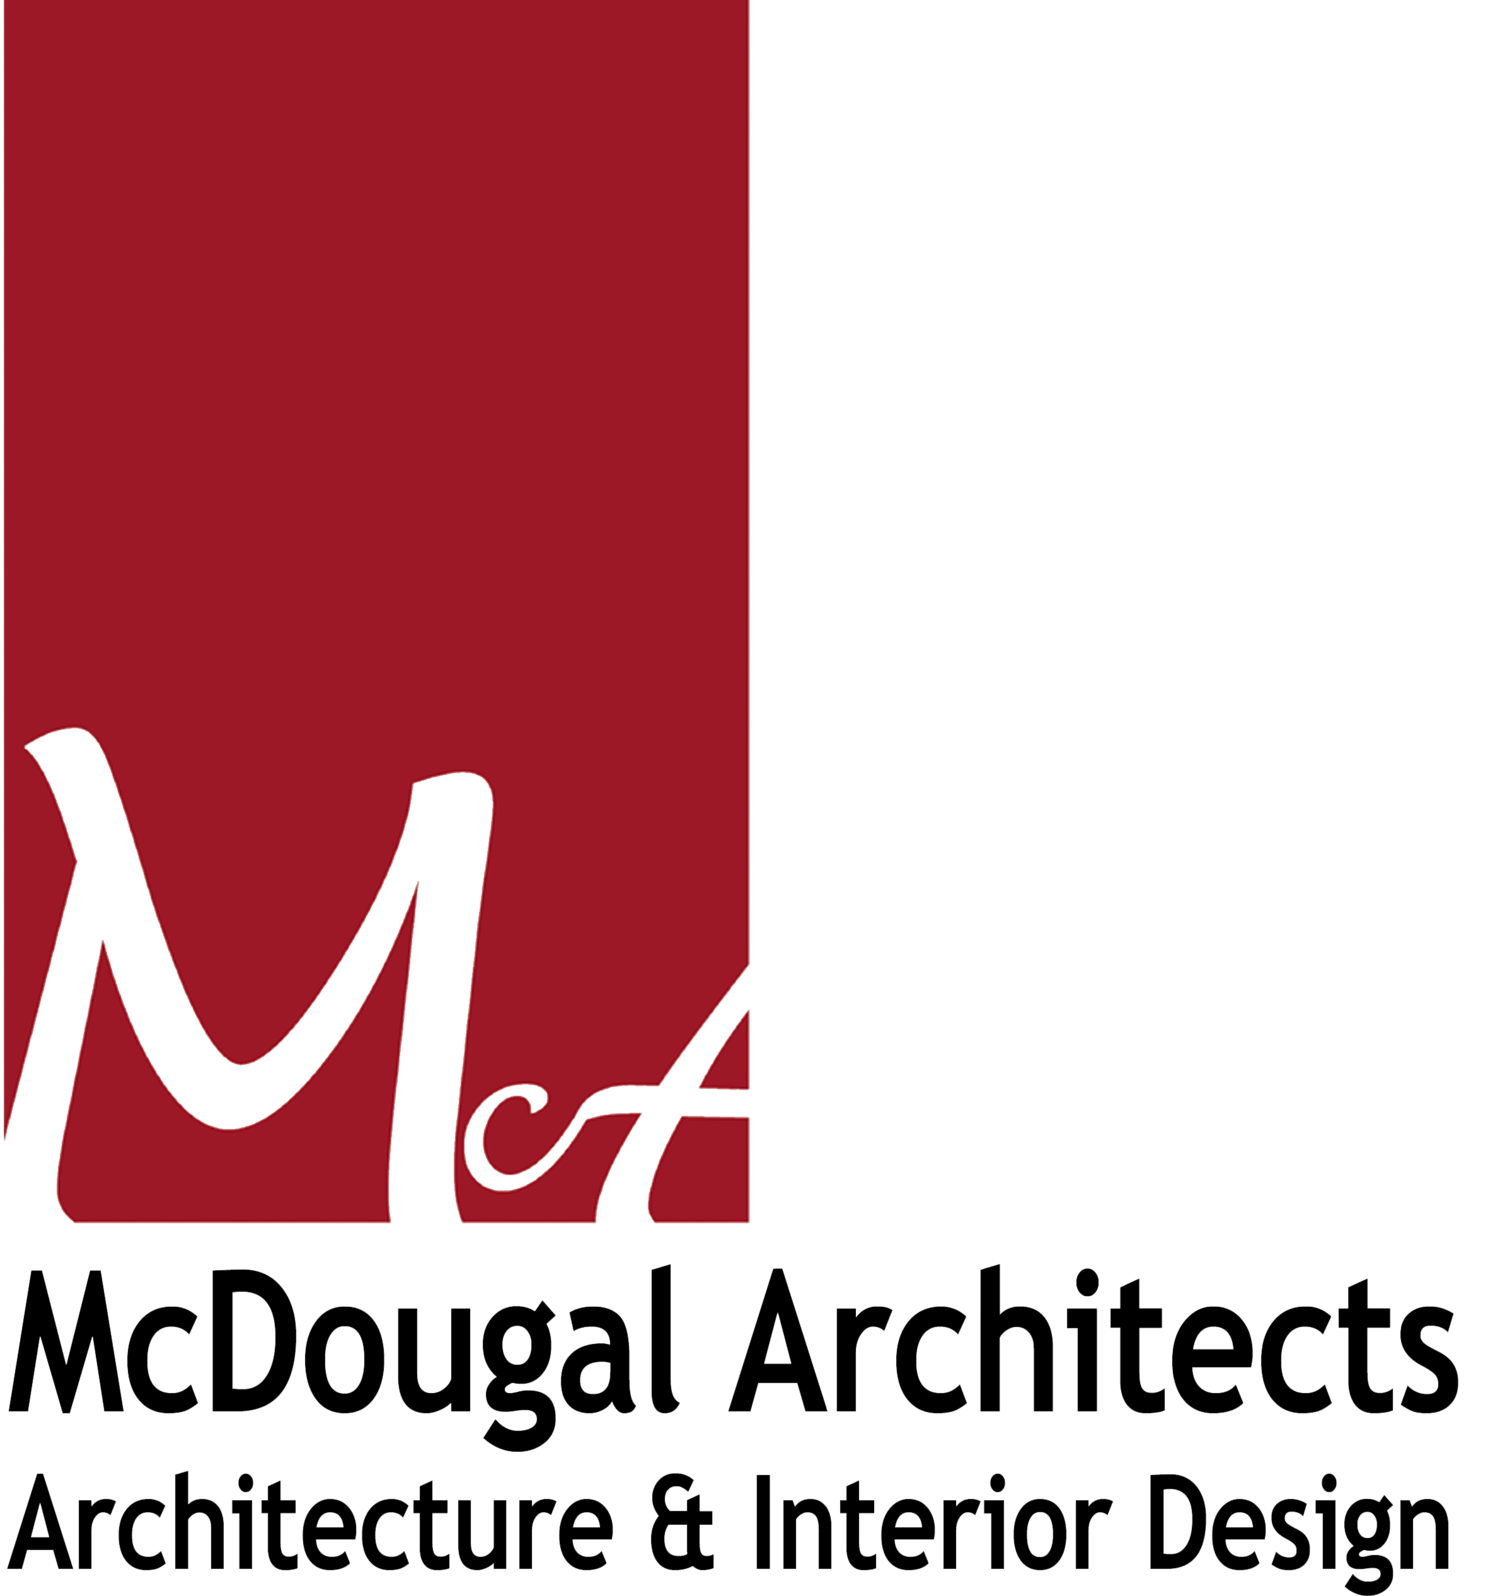 McDougal Architects